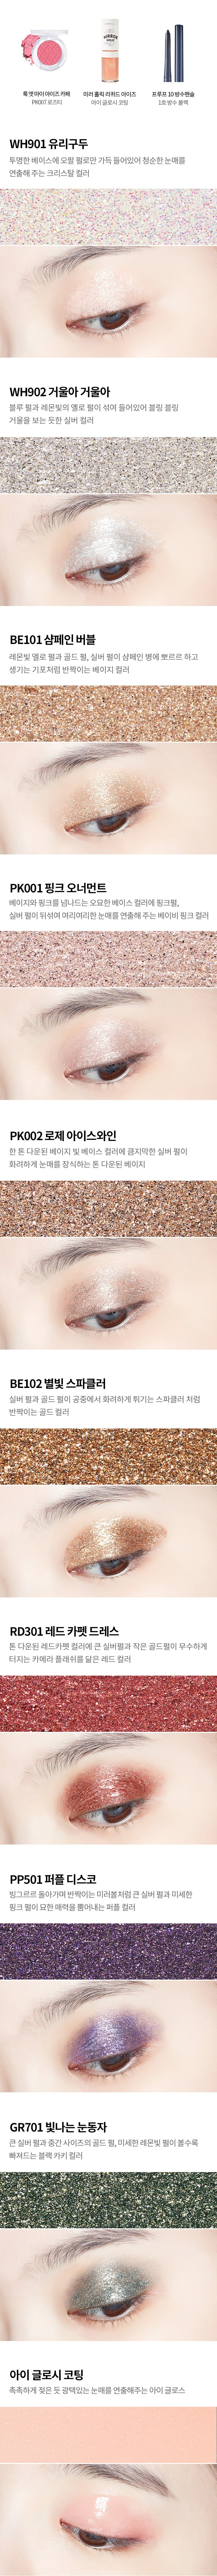 ETUDE HOUSE Mirror Holic Liquid Eyes [GR701 Bright Eyes]